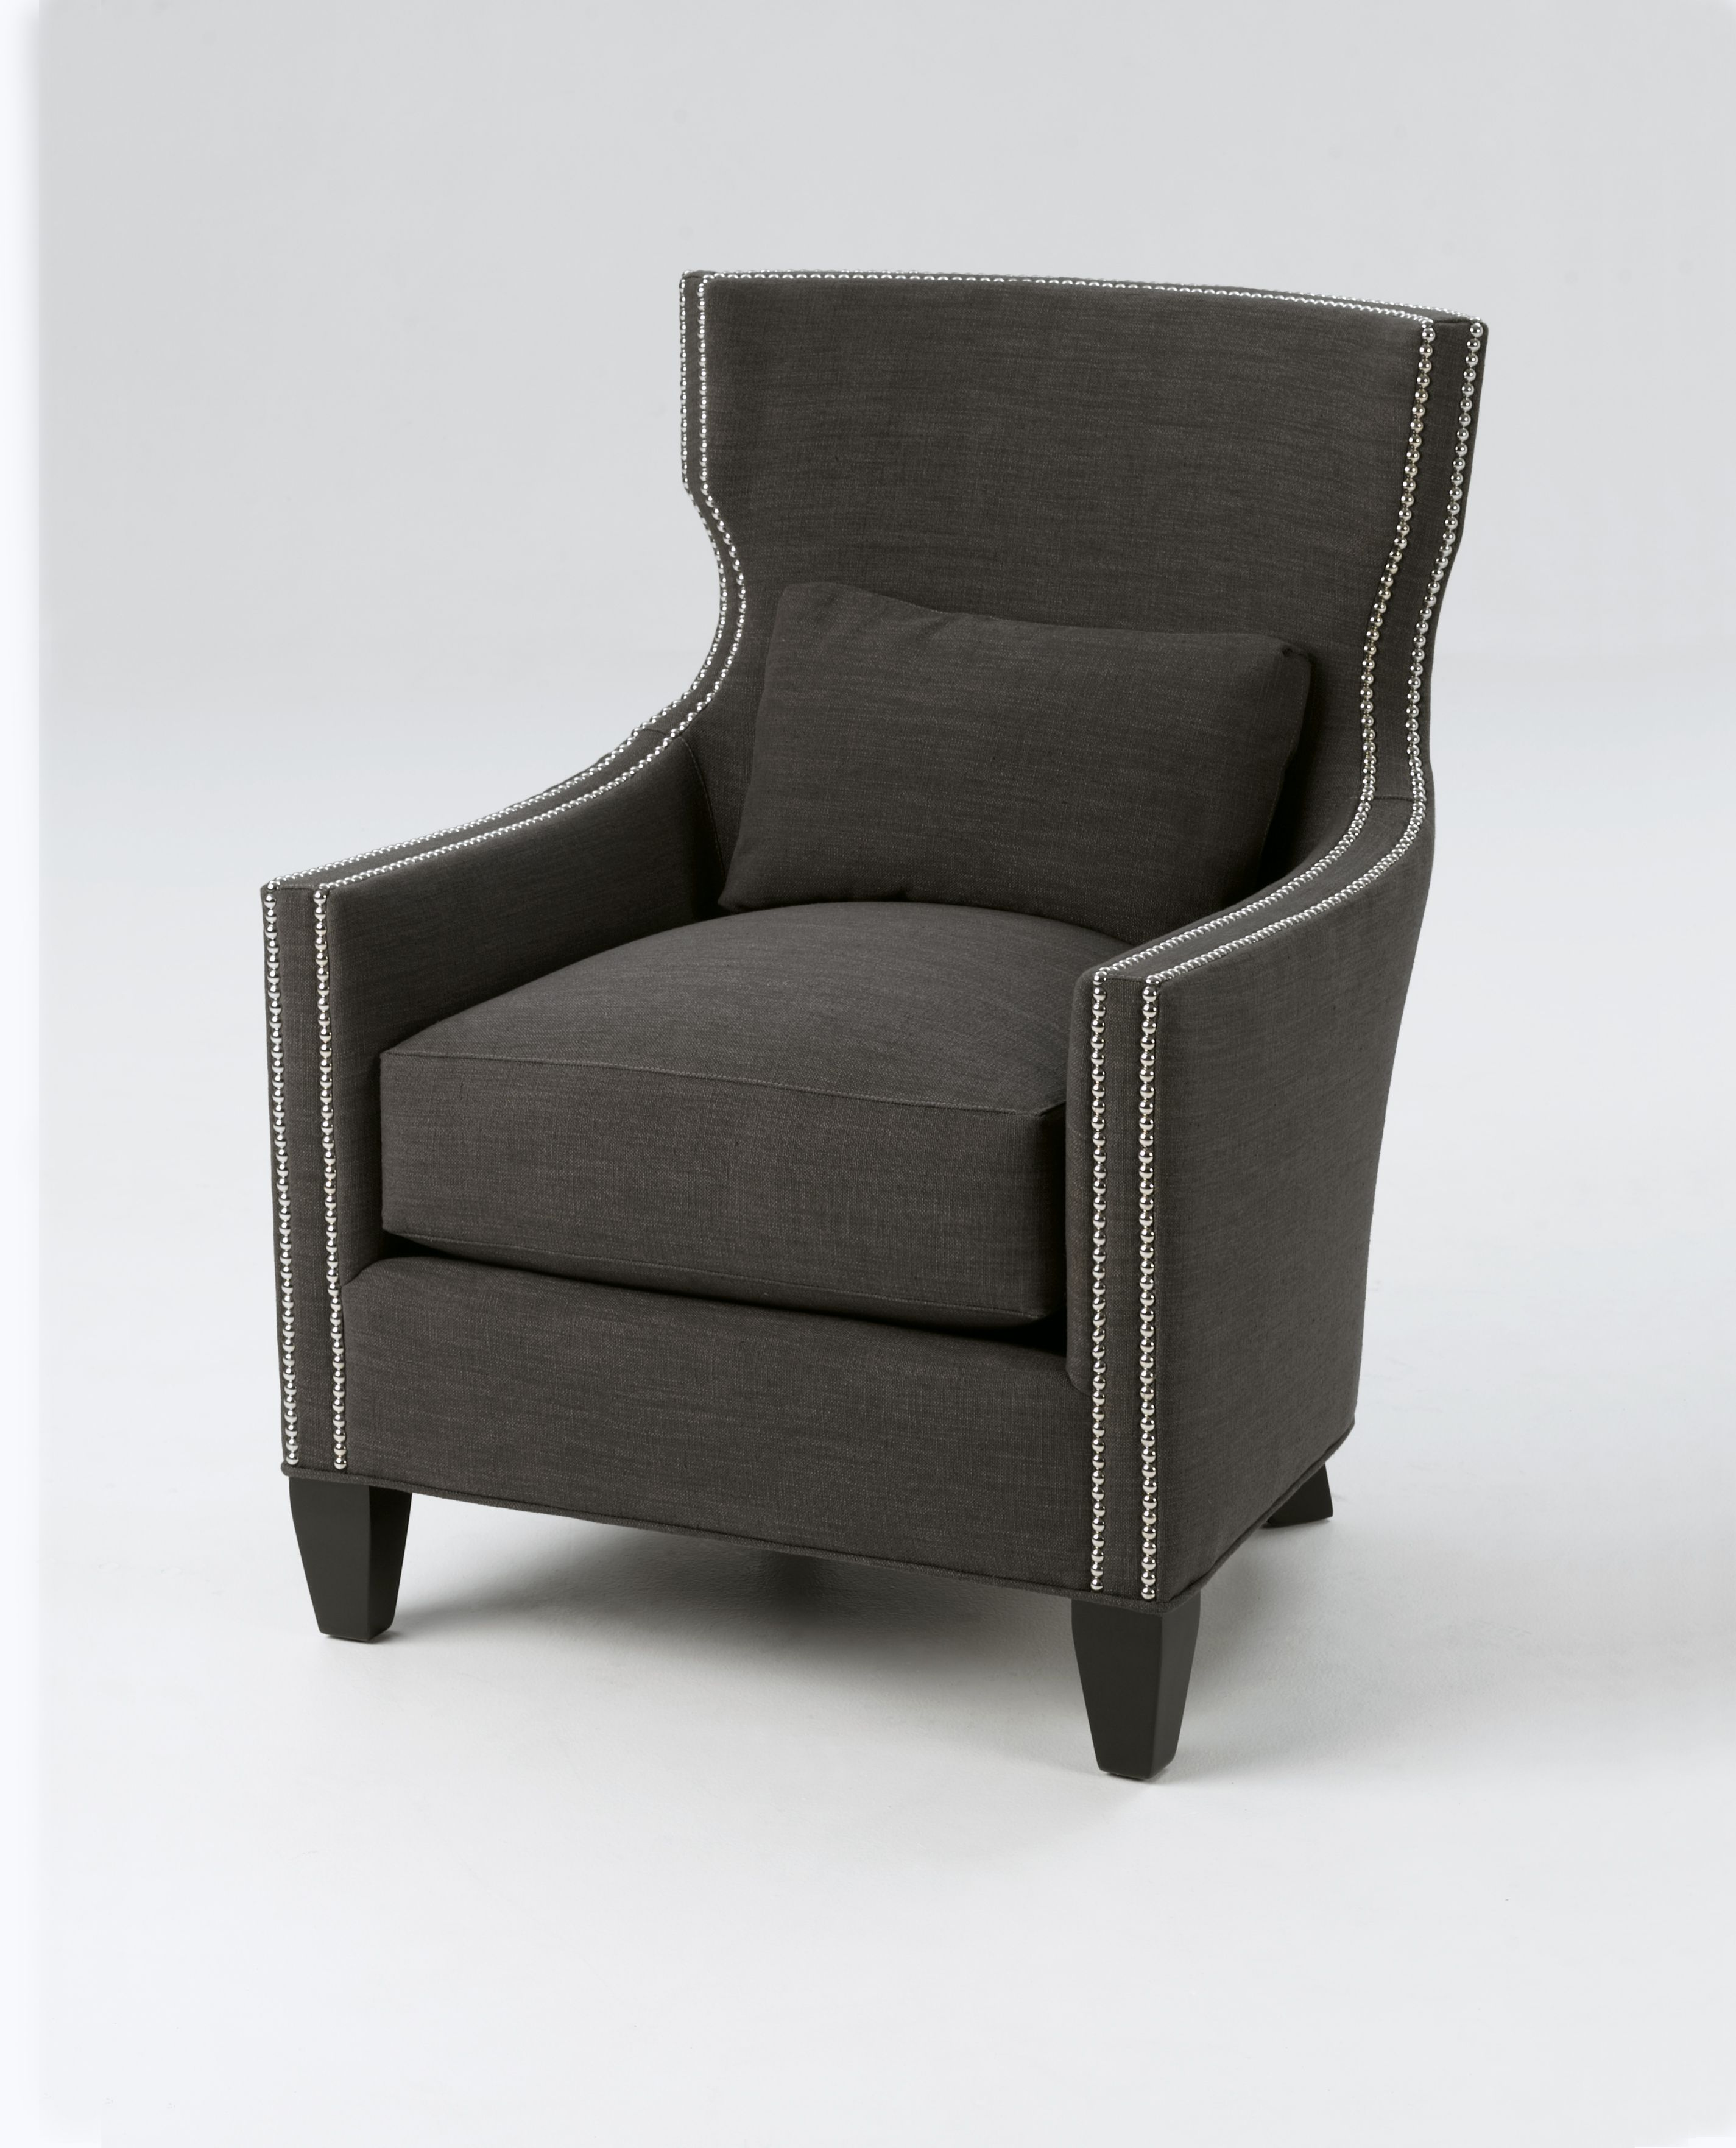 The Joey Chair from the Gold Coast Collection Available in fabric